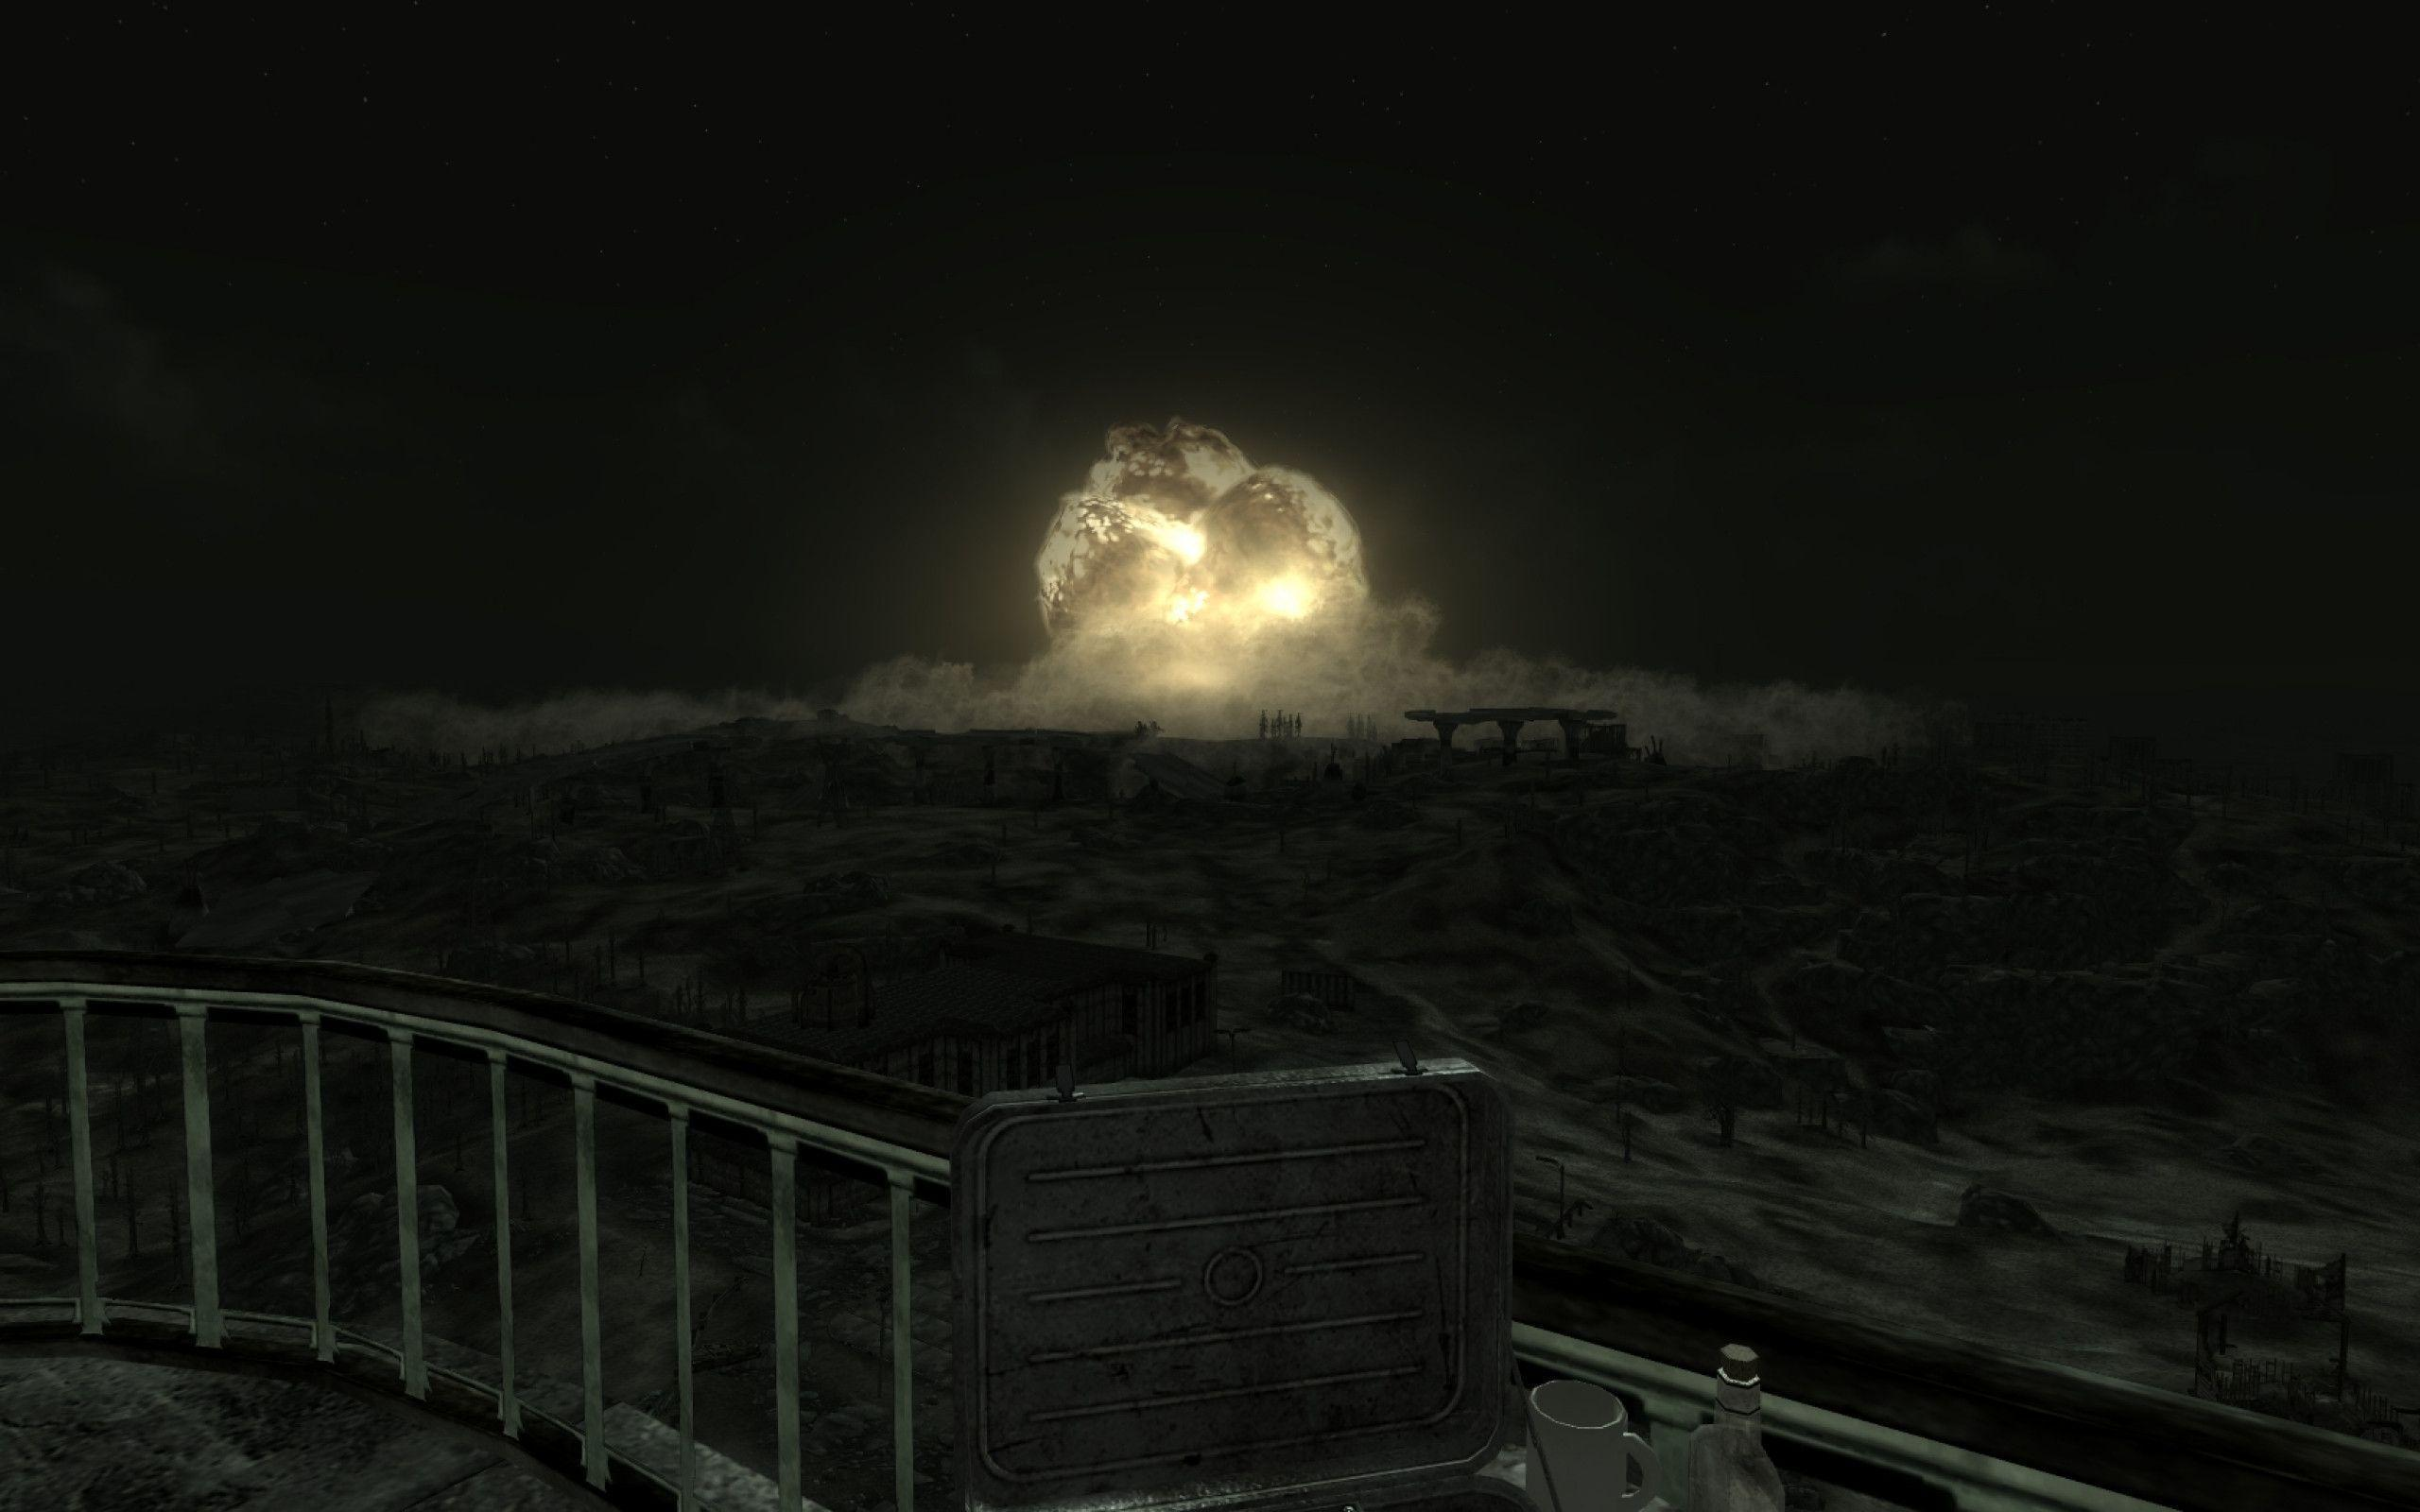 fallout wallpaper hd iphone 5